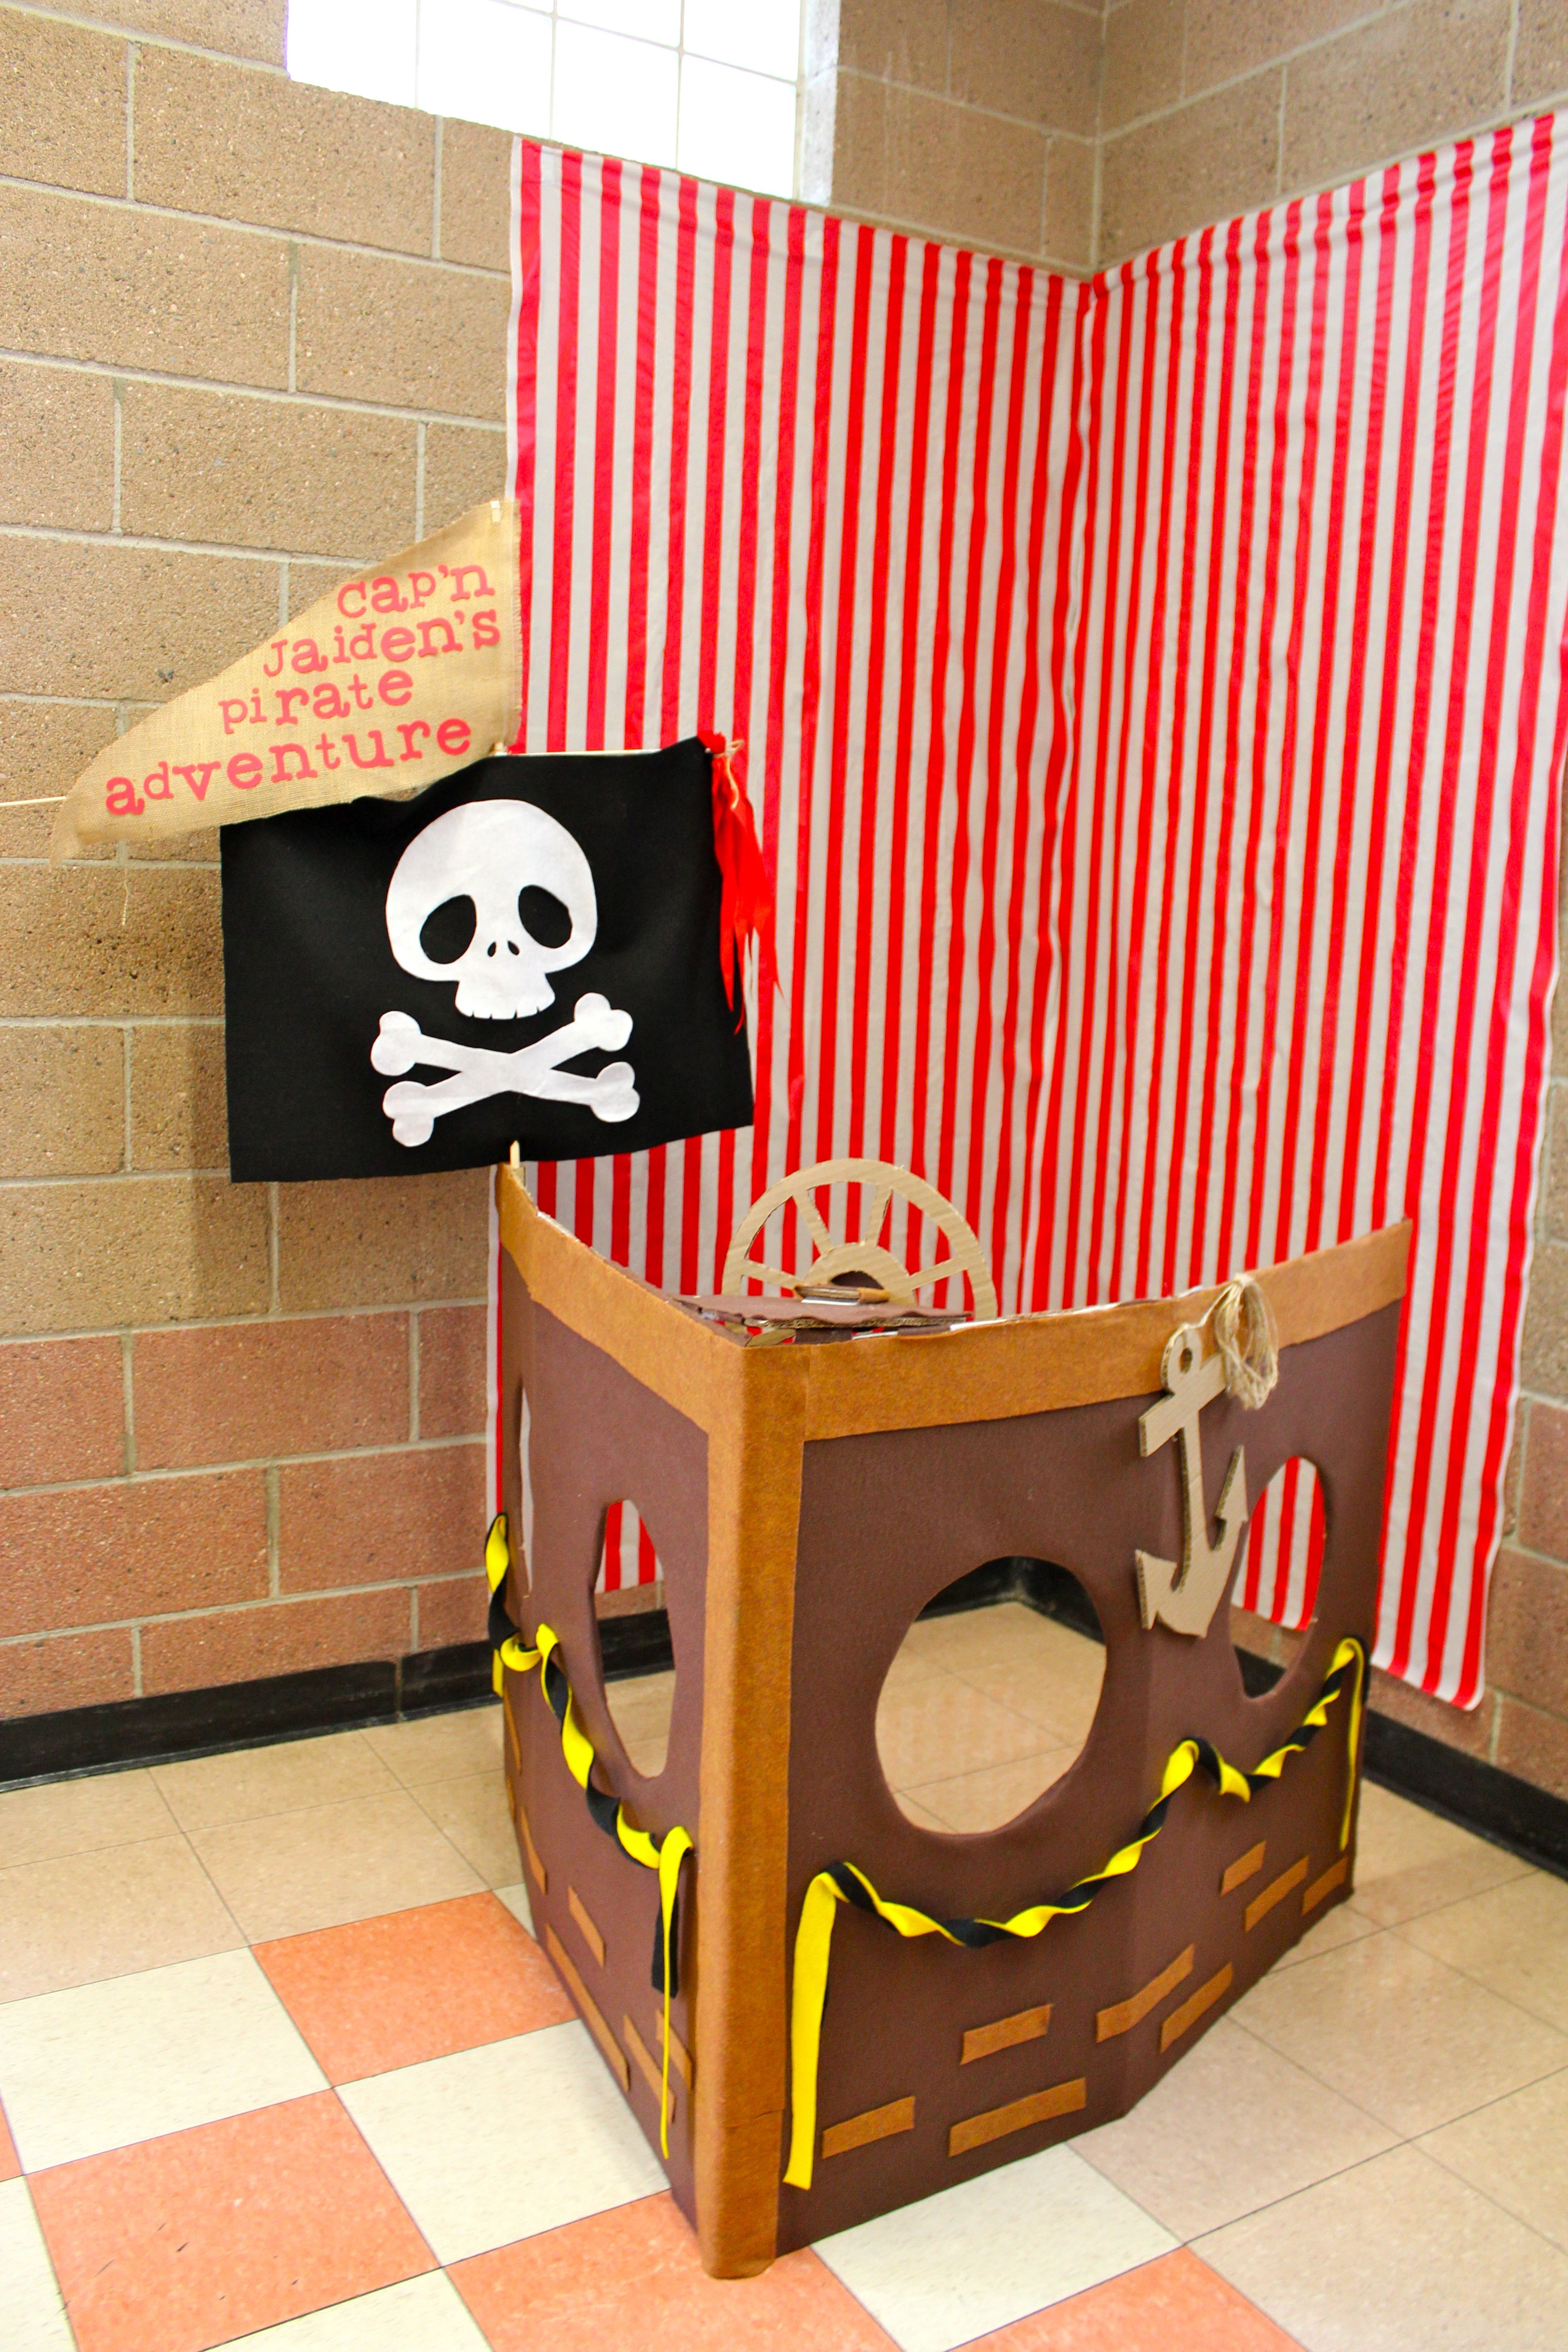 picture backdrop: i made a pirate ship boat with a #balikbayan box. Lined and decorated with felt. I made the wheel turnable and the kids had fun turning the wheel while taking their picture.